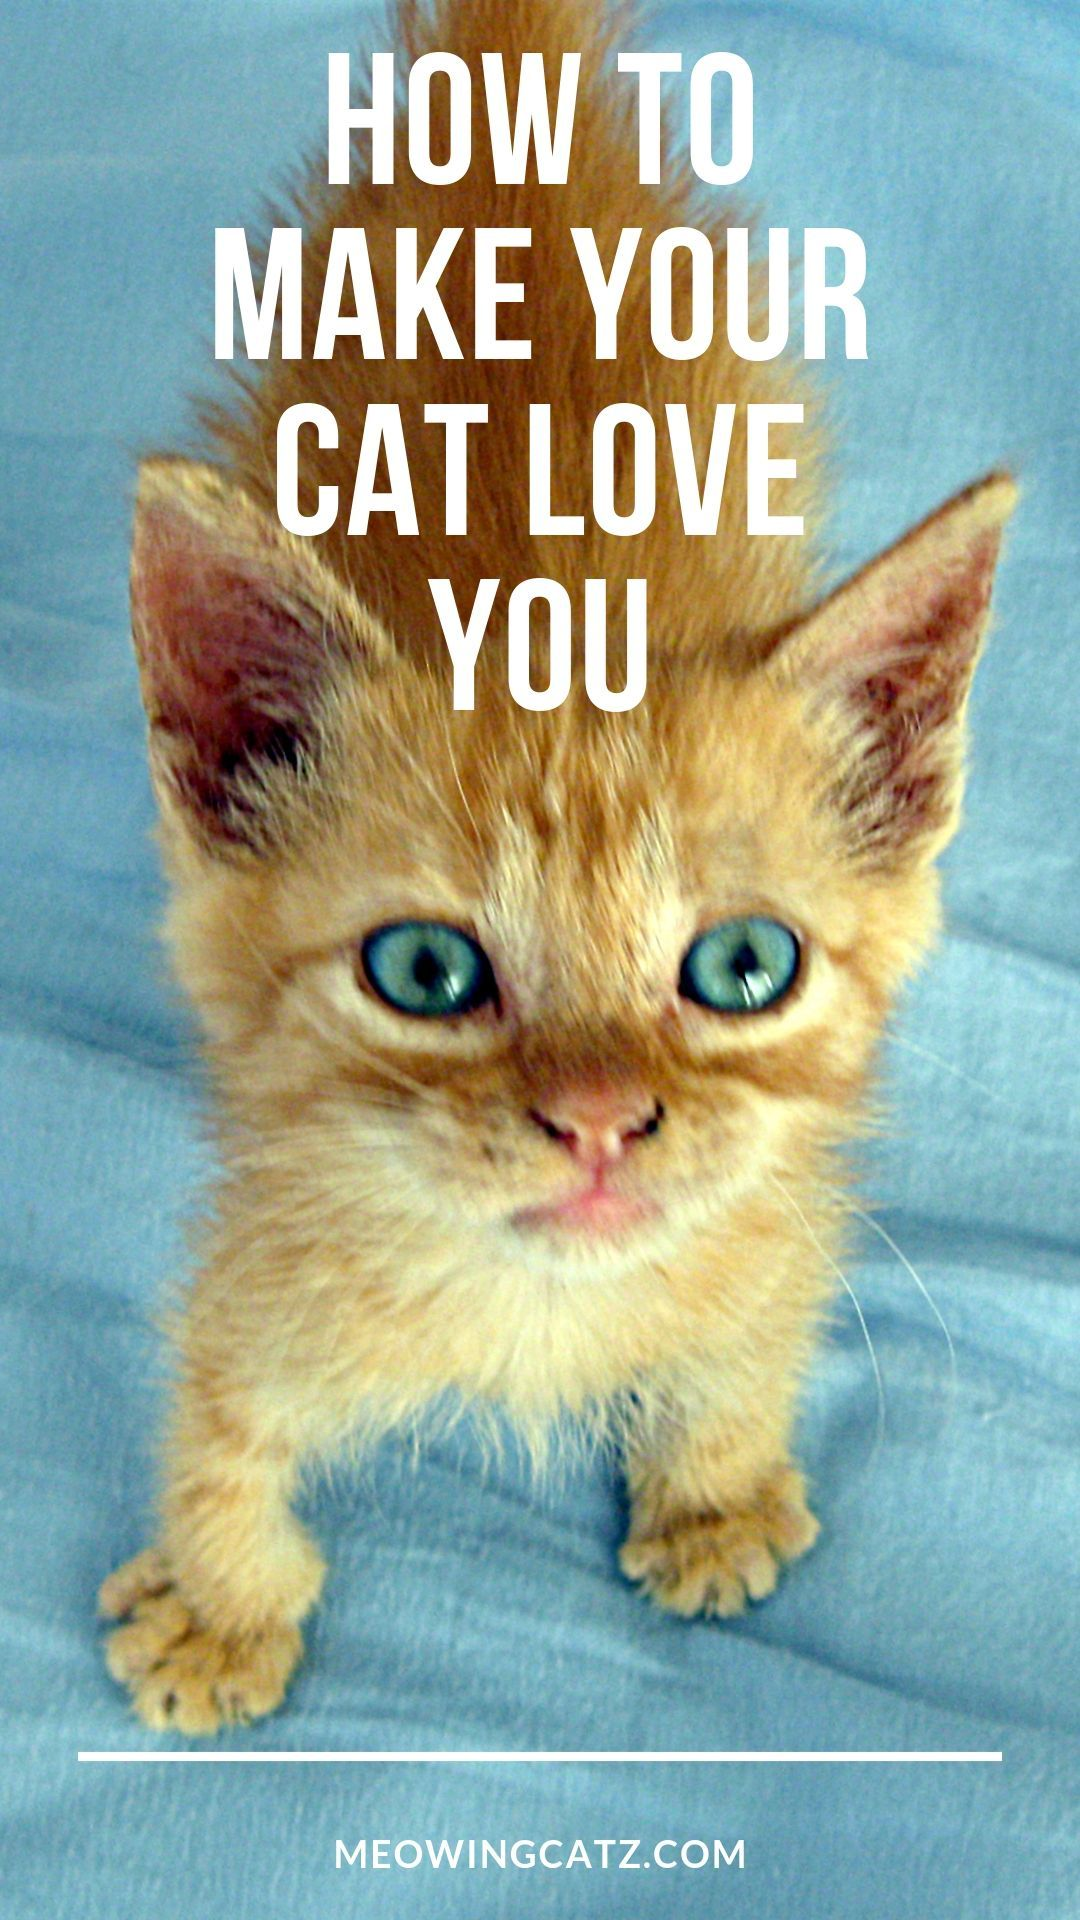 42f09f1b2097f73be90c0a2cc895339f - How Do You Get Your Cat To Like You